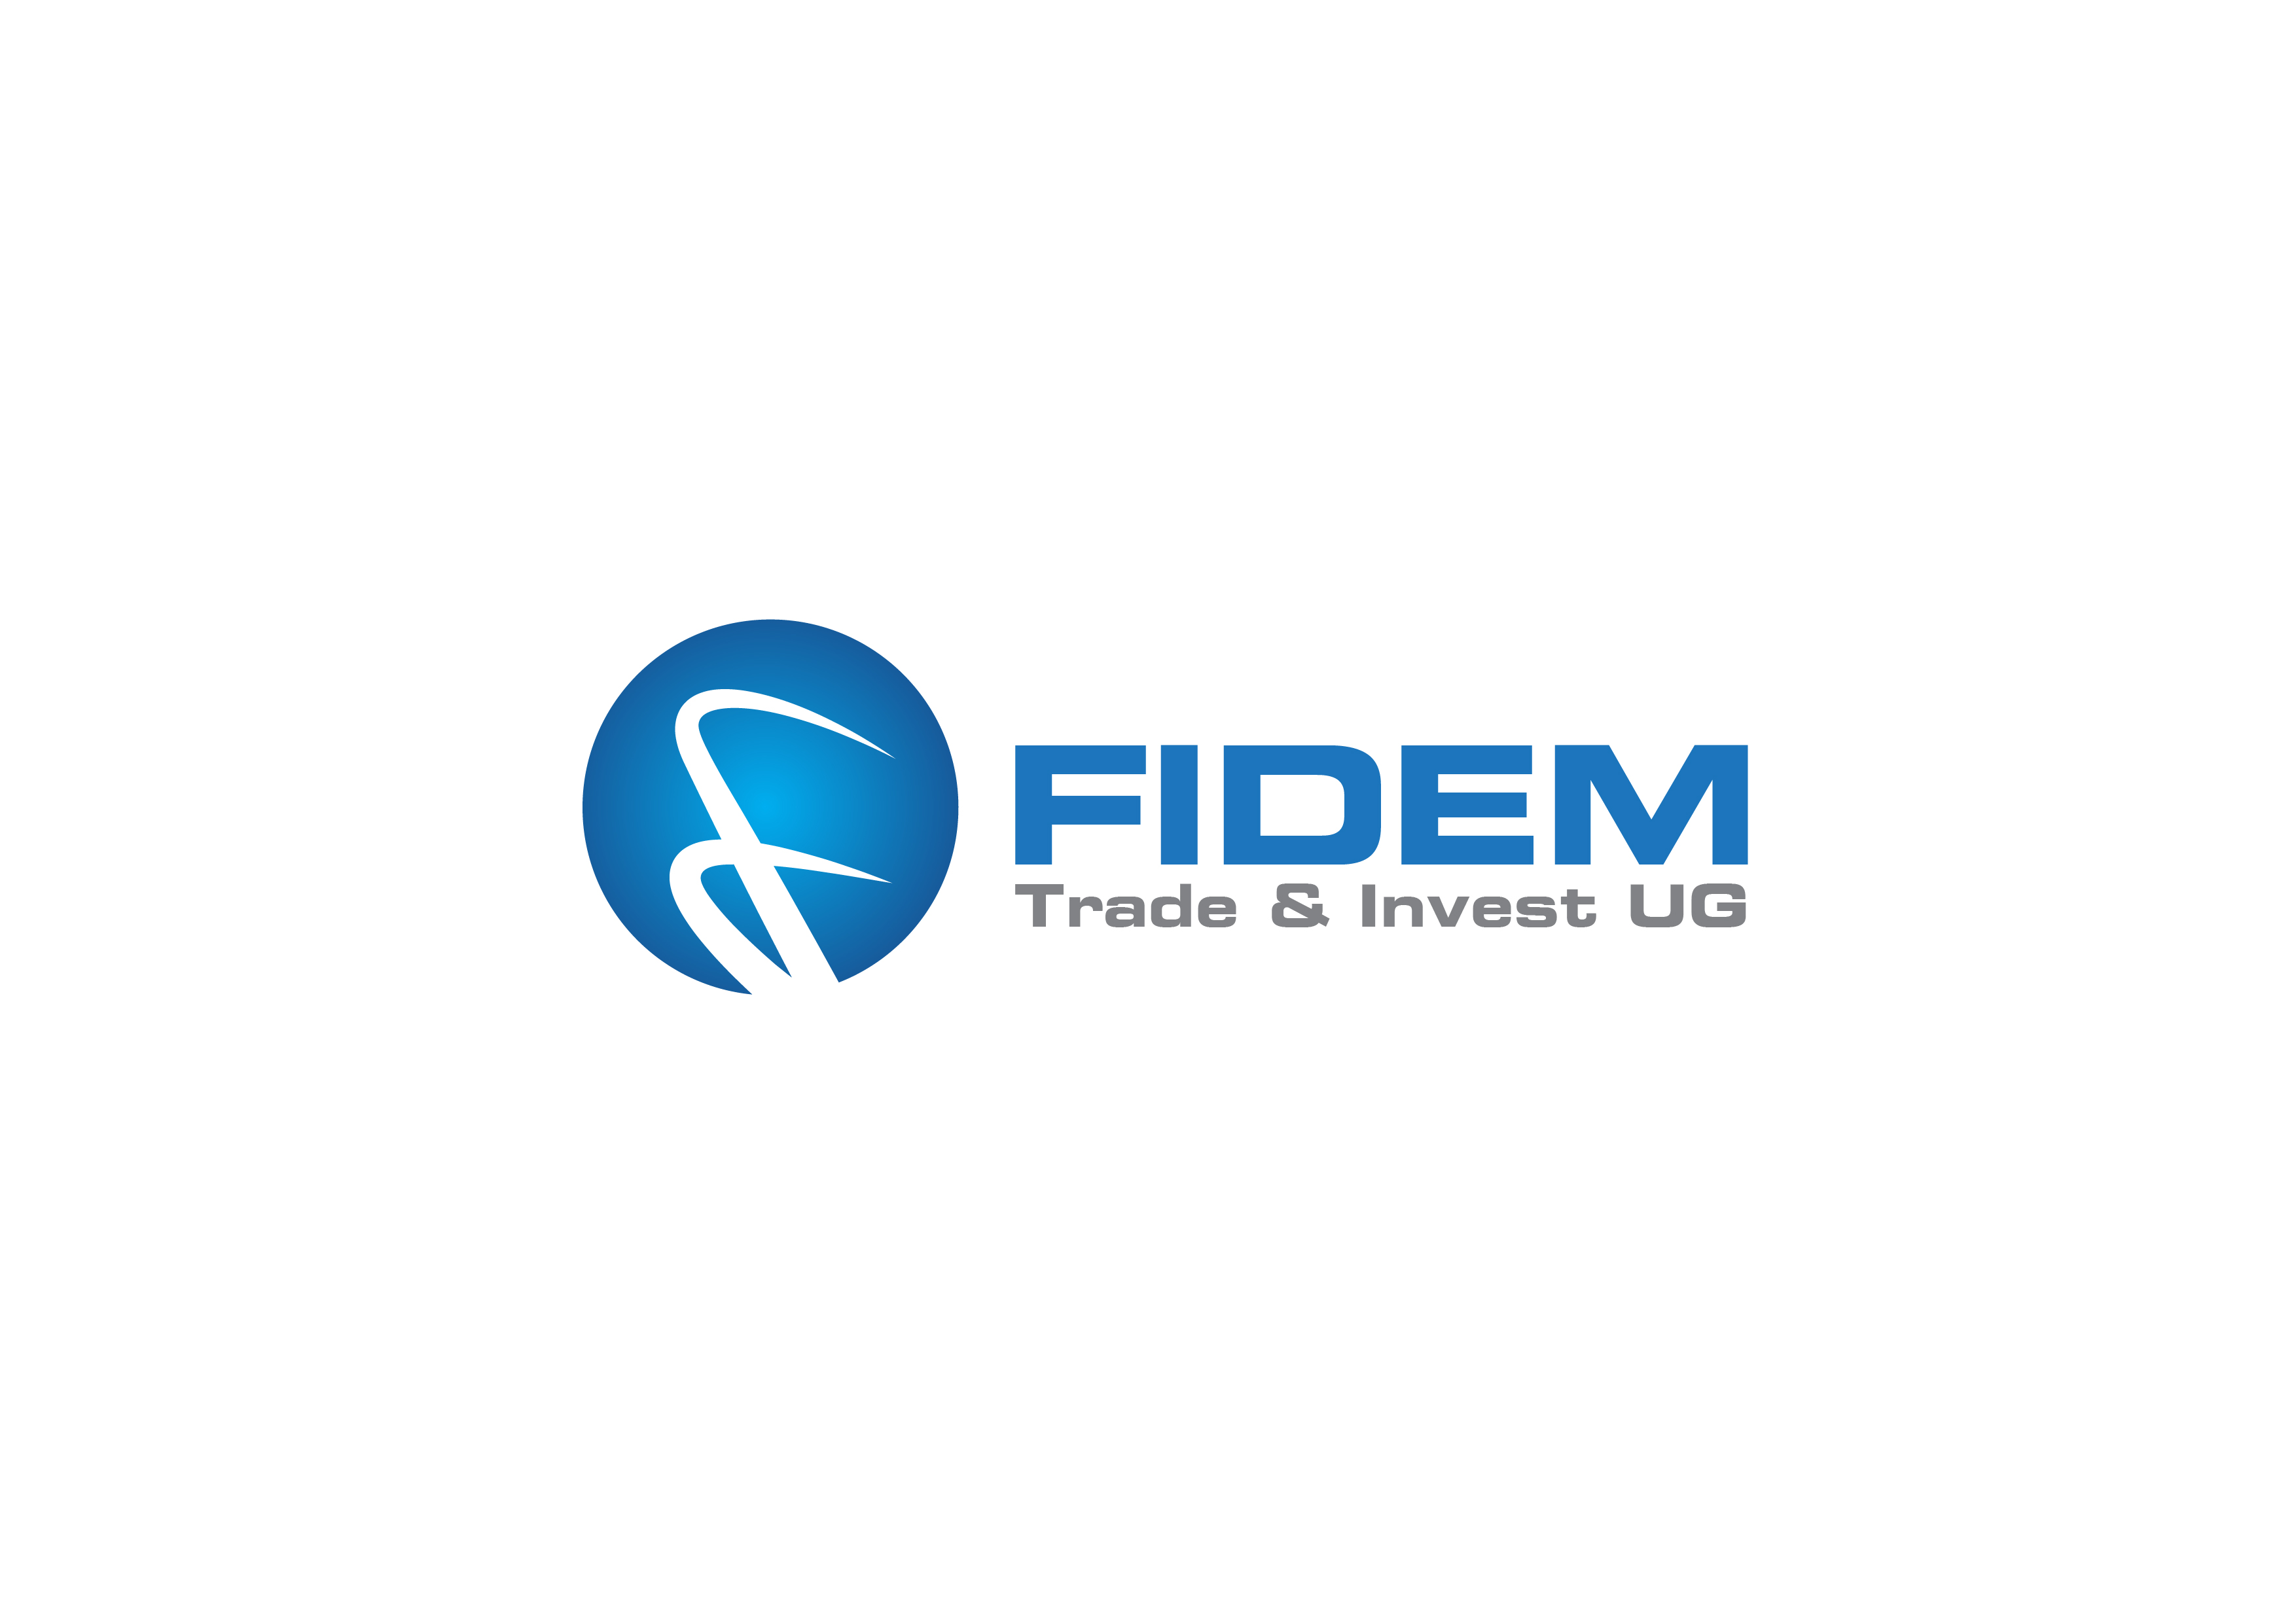 Logo Design by 3draw - Entry No. 497 in the Logo Design Contest Professional Logo Design for FIDEM Trade & Invest UG.